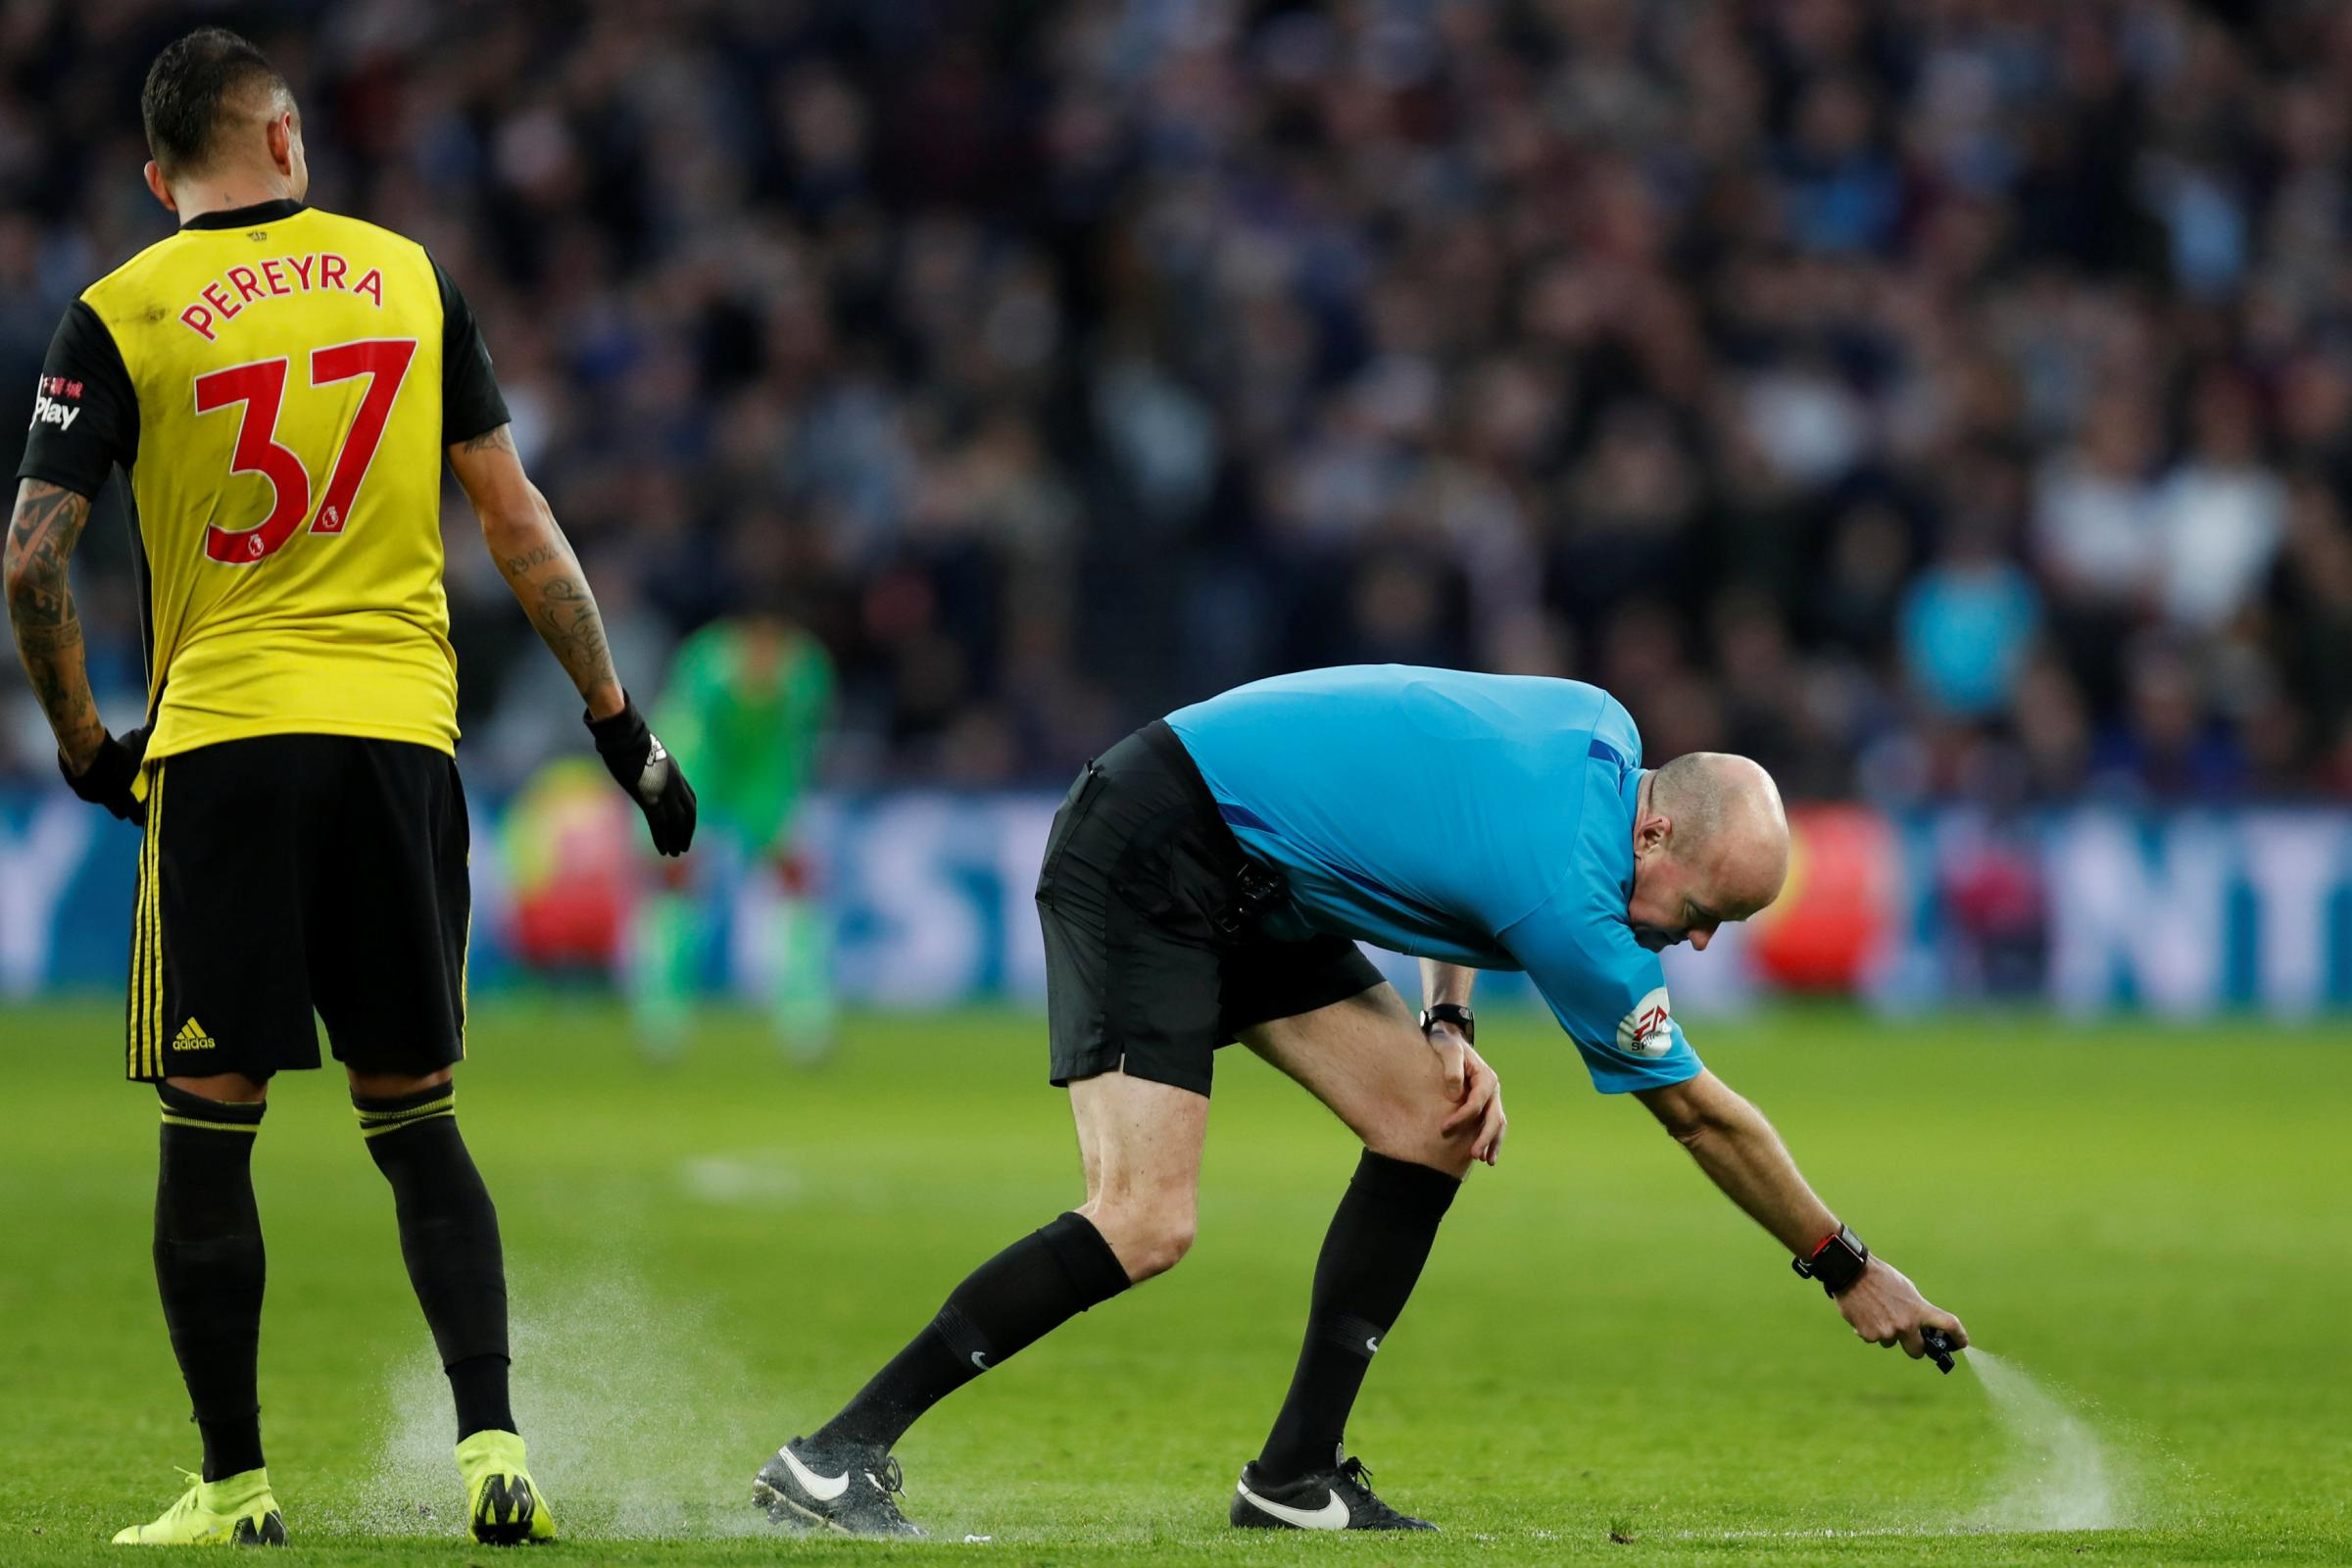 Lee Mason to referee FA Cup fourth round tie with Manchester United if Watford beat Tranmere Rovers